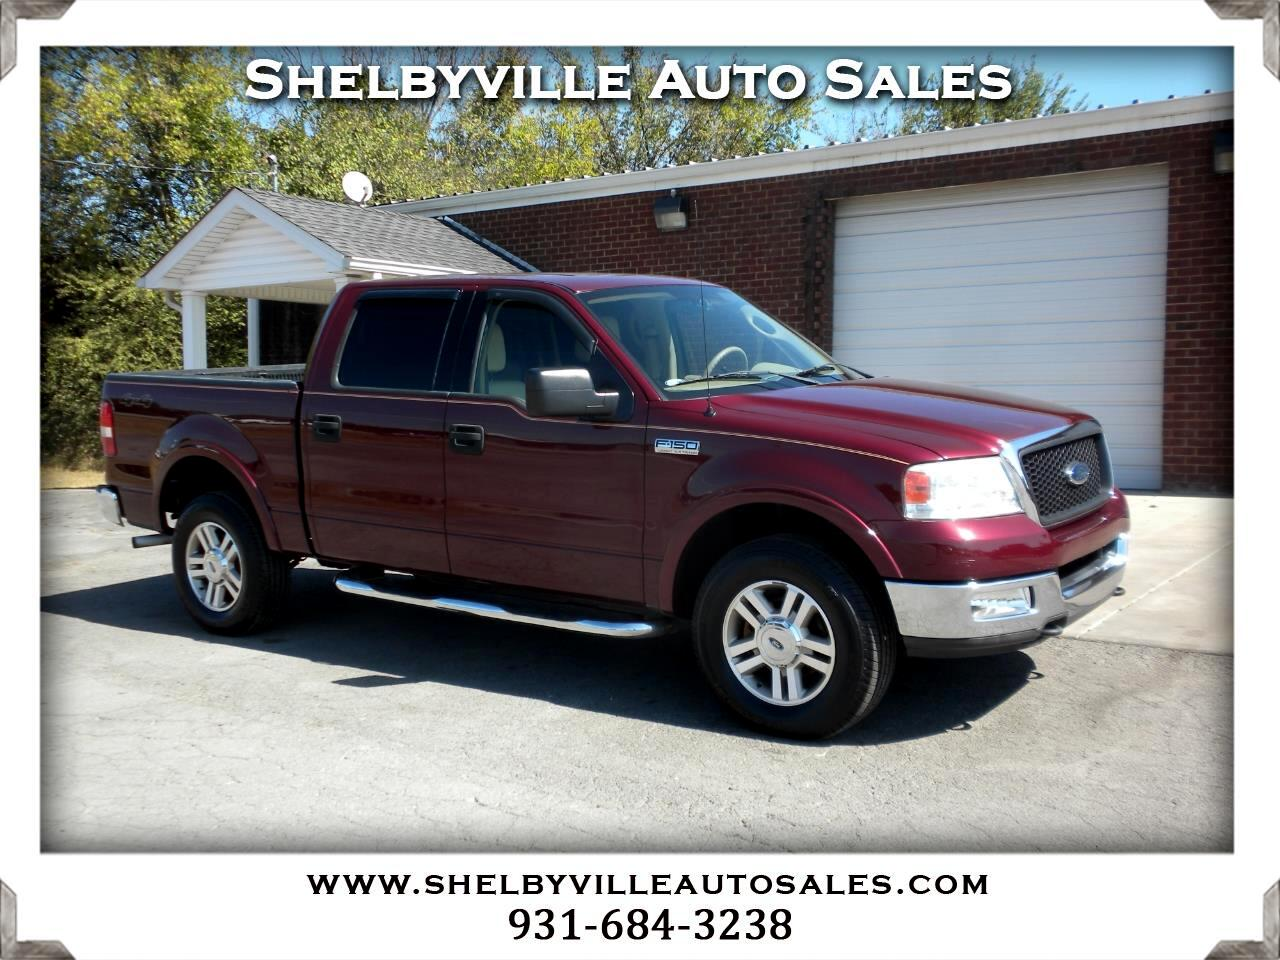 2004 Ford F-150 4X4 SuperCrew Lariat